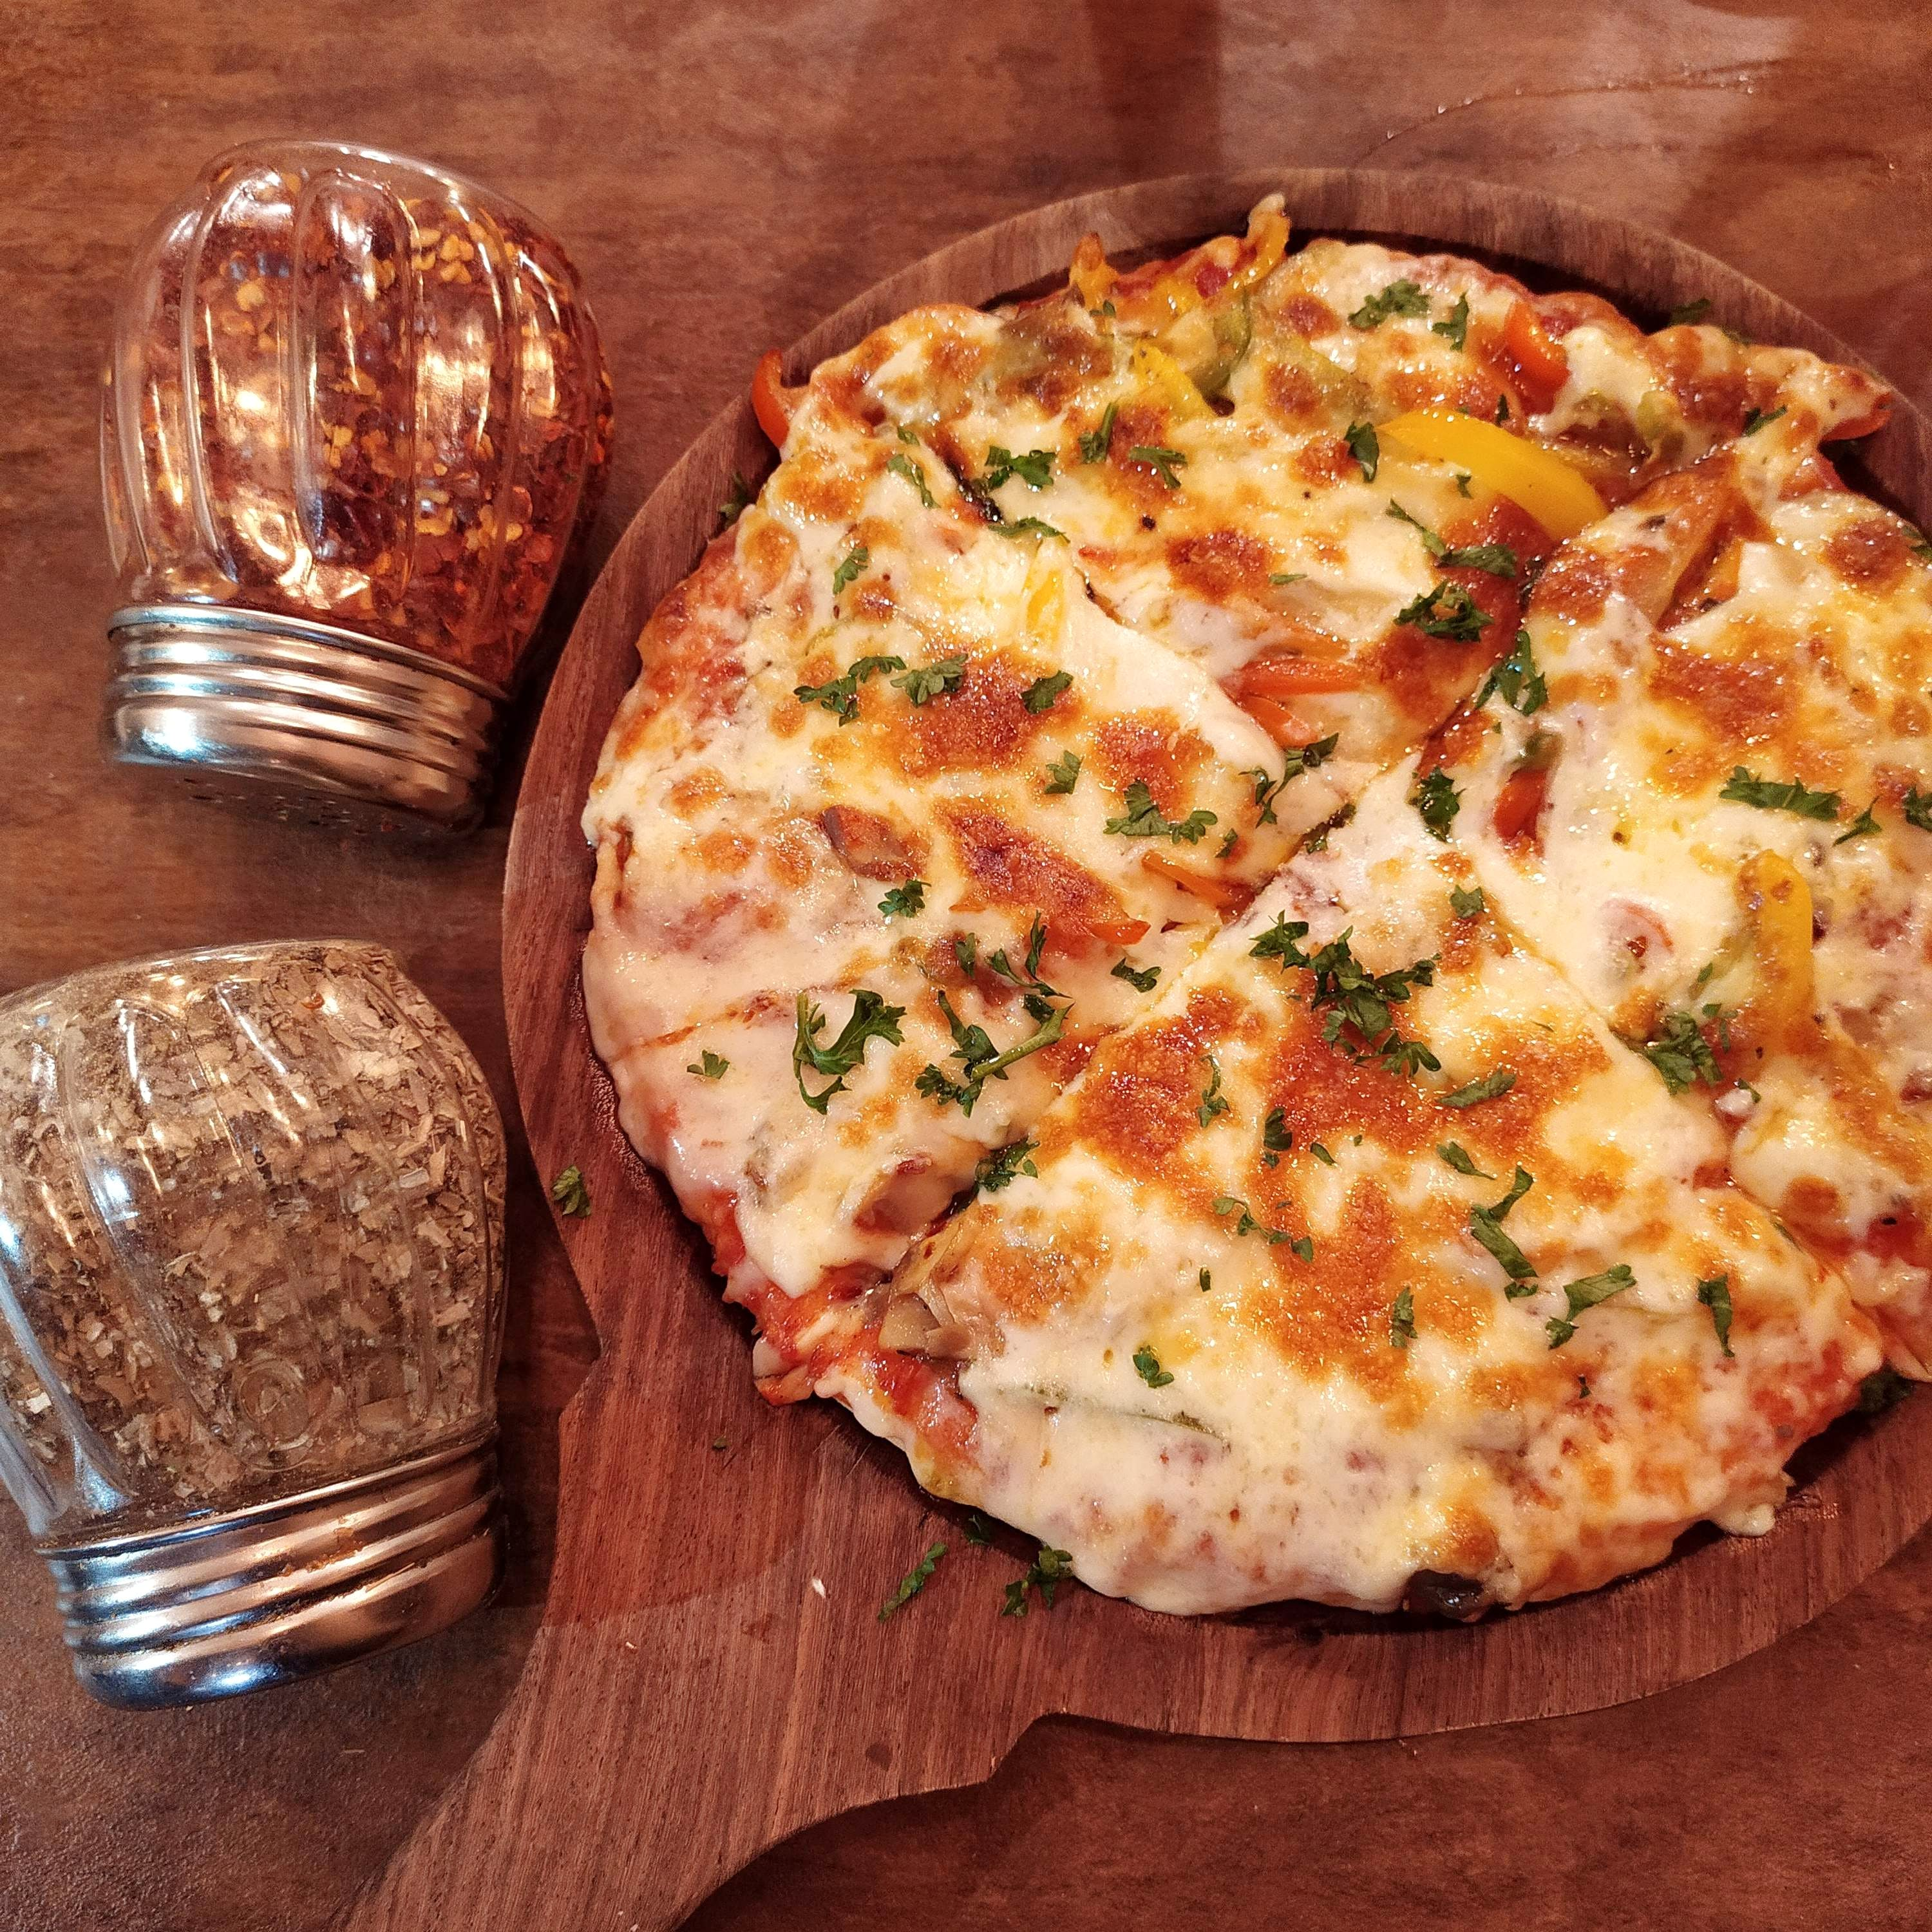 This Small Cafe Does Yum Pizzas & Pastas!